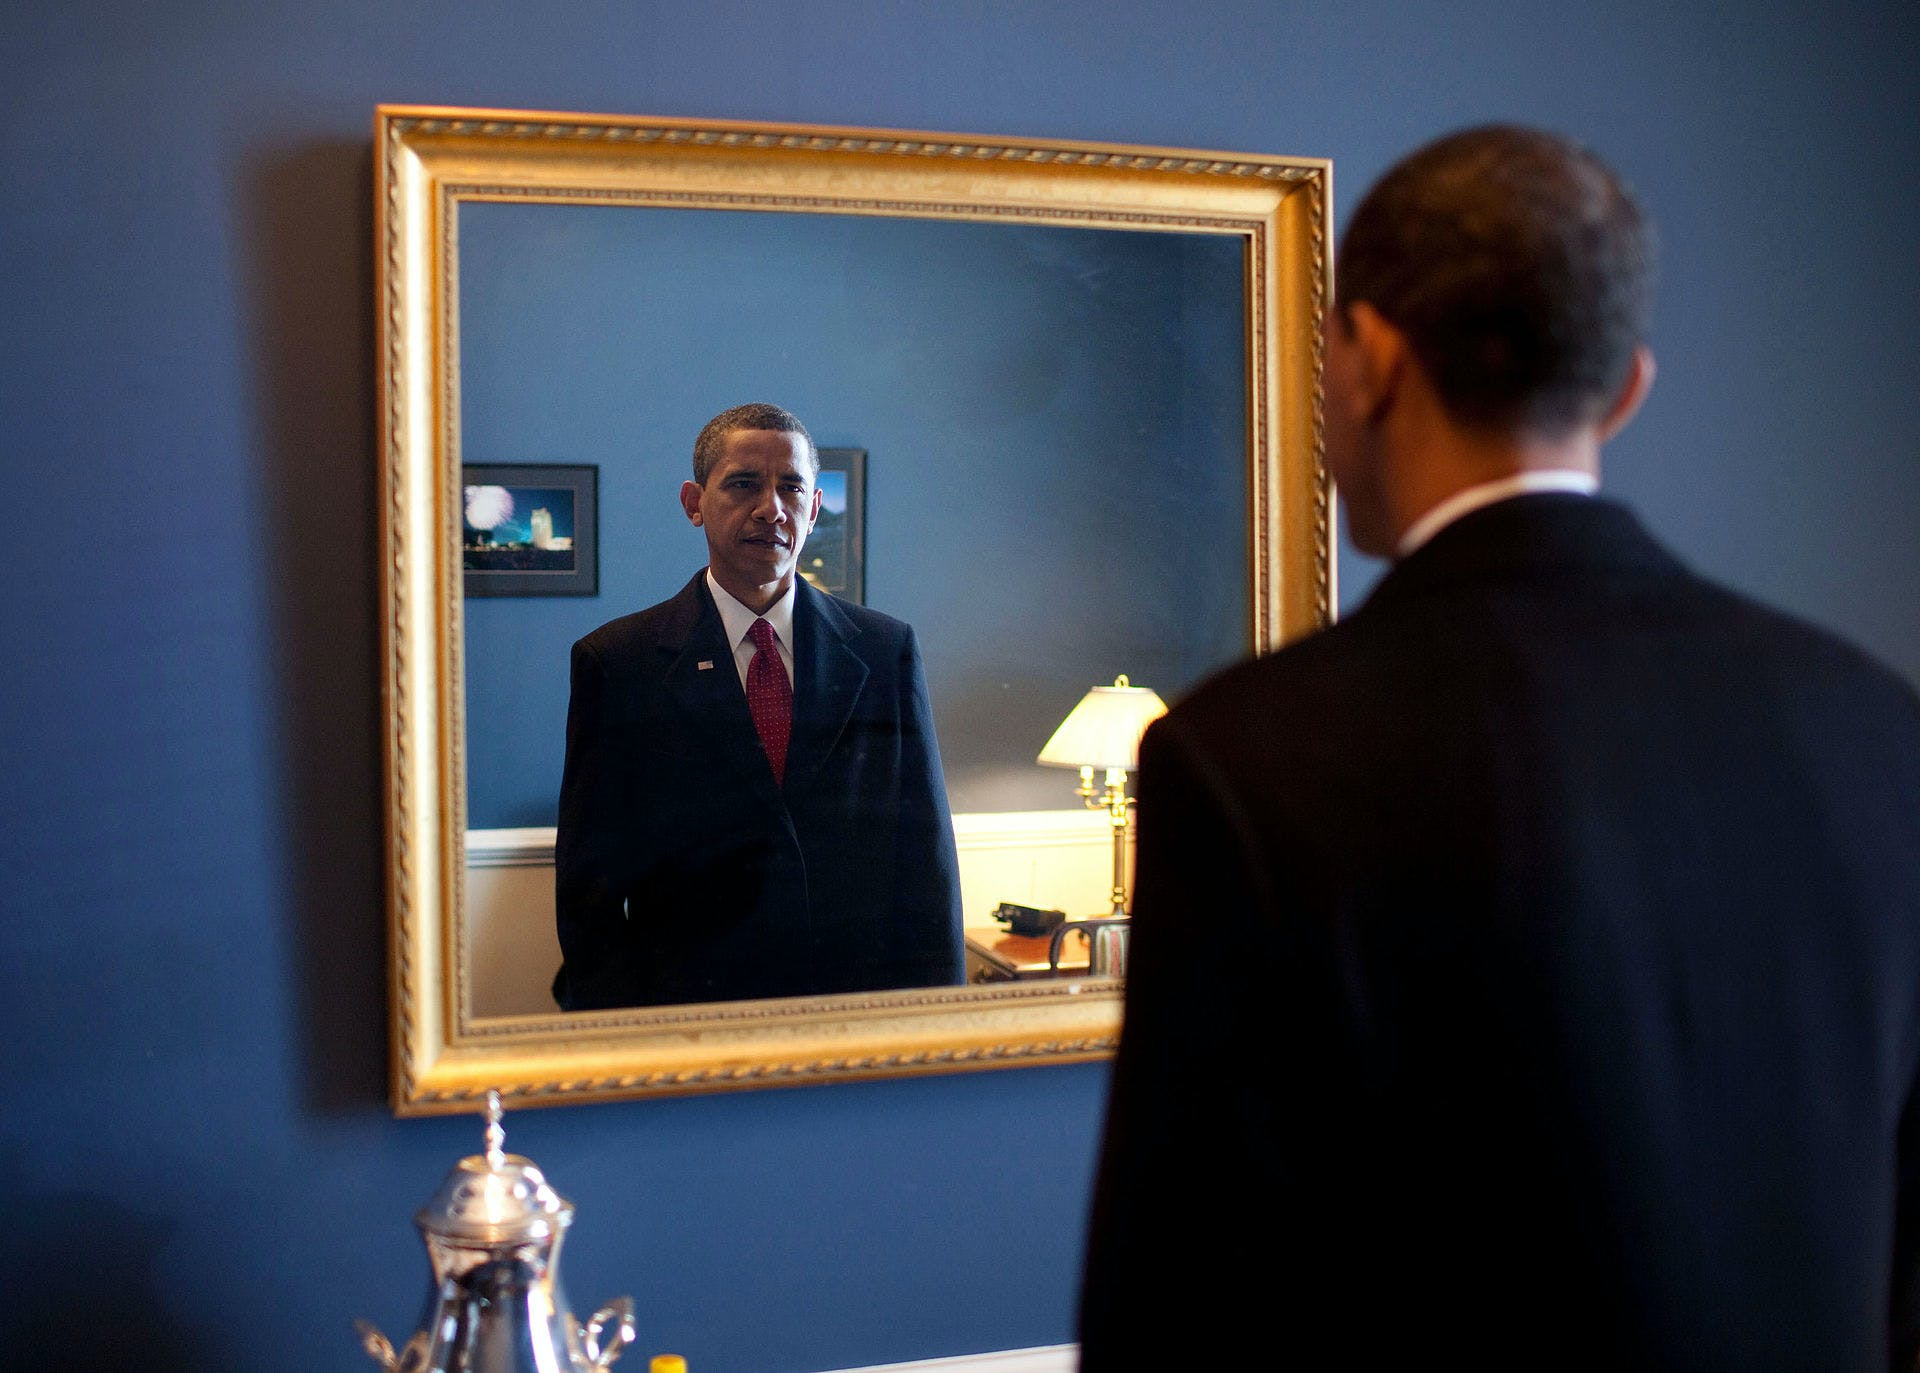 Barack Obama takes one last look in the mirror before going out to take oath Jan. 20 2009 The Best Weed Quotes by Famous People Throughout History